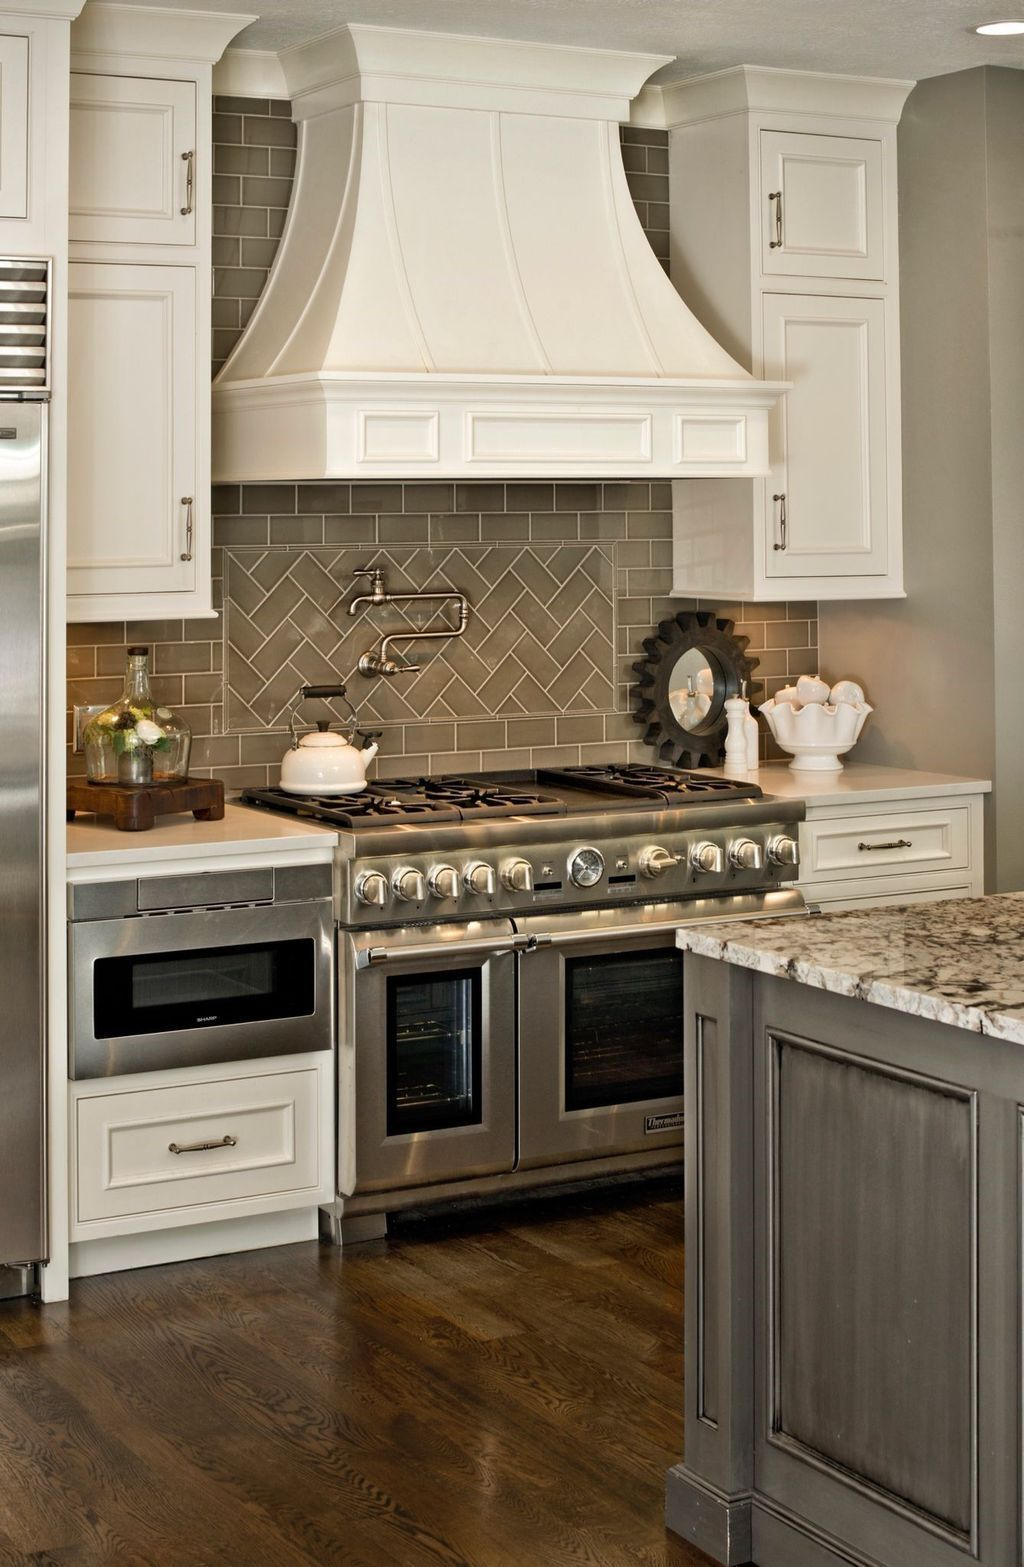 36 Beautiful Farmhouse Kitchen Backsplash Design Ideas Awesome